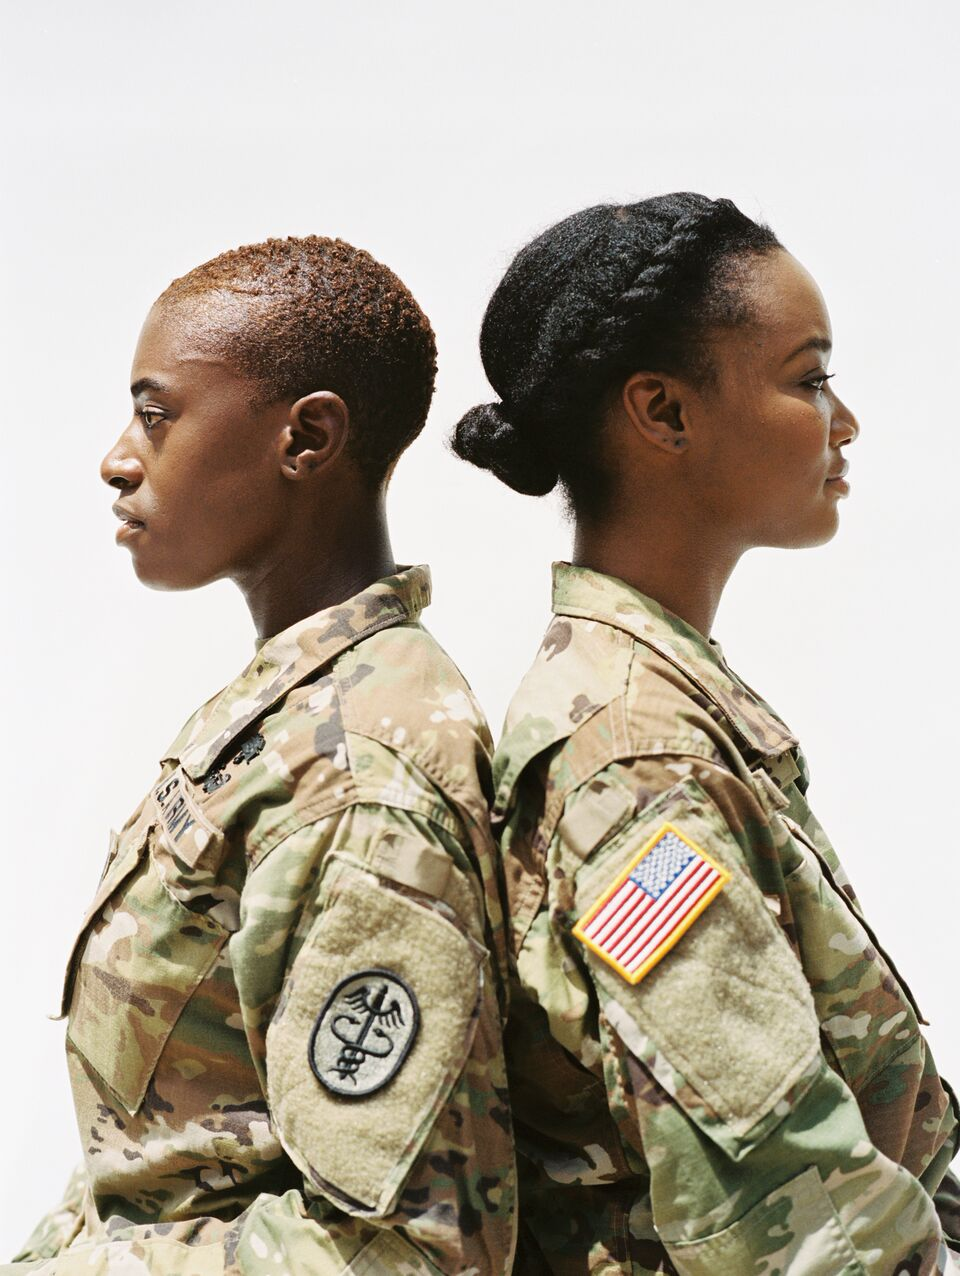 These Black Women In The Military Are Using Their Natural Hair to Make a Powerful Statement